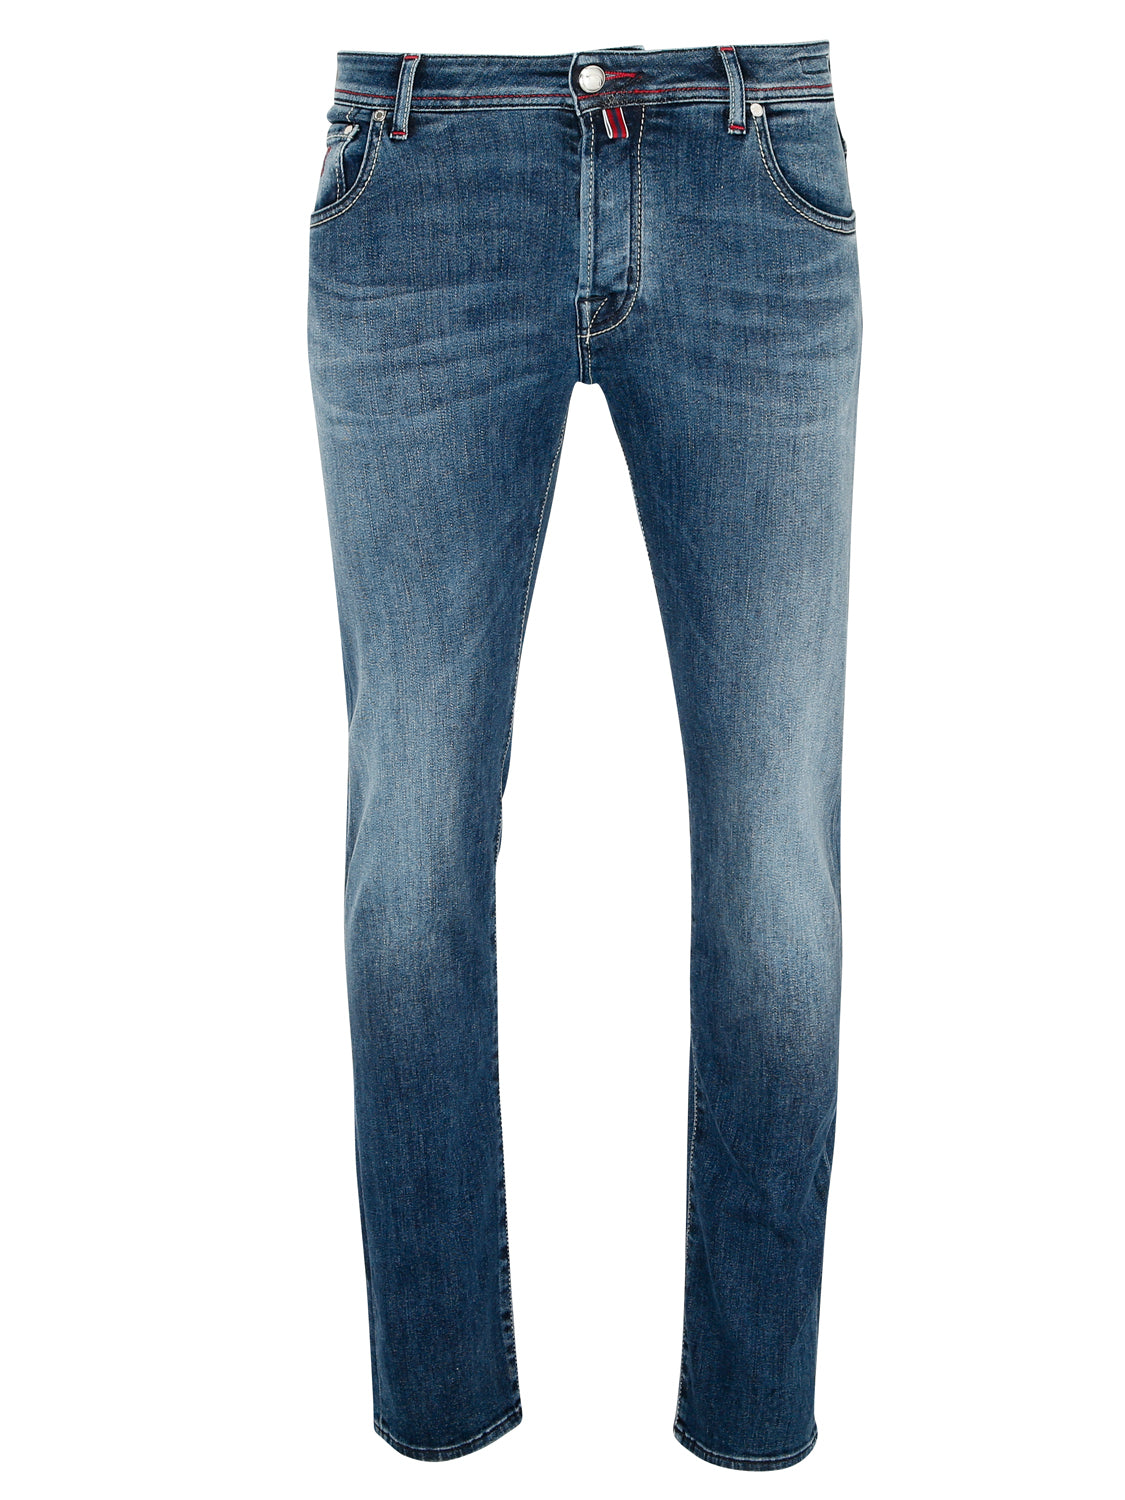 Jacob Cohen J622 Red Badge Red Stitch Jeans (Mid Wash) - Union 22